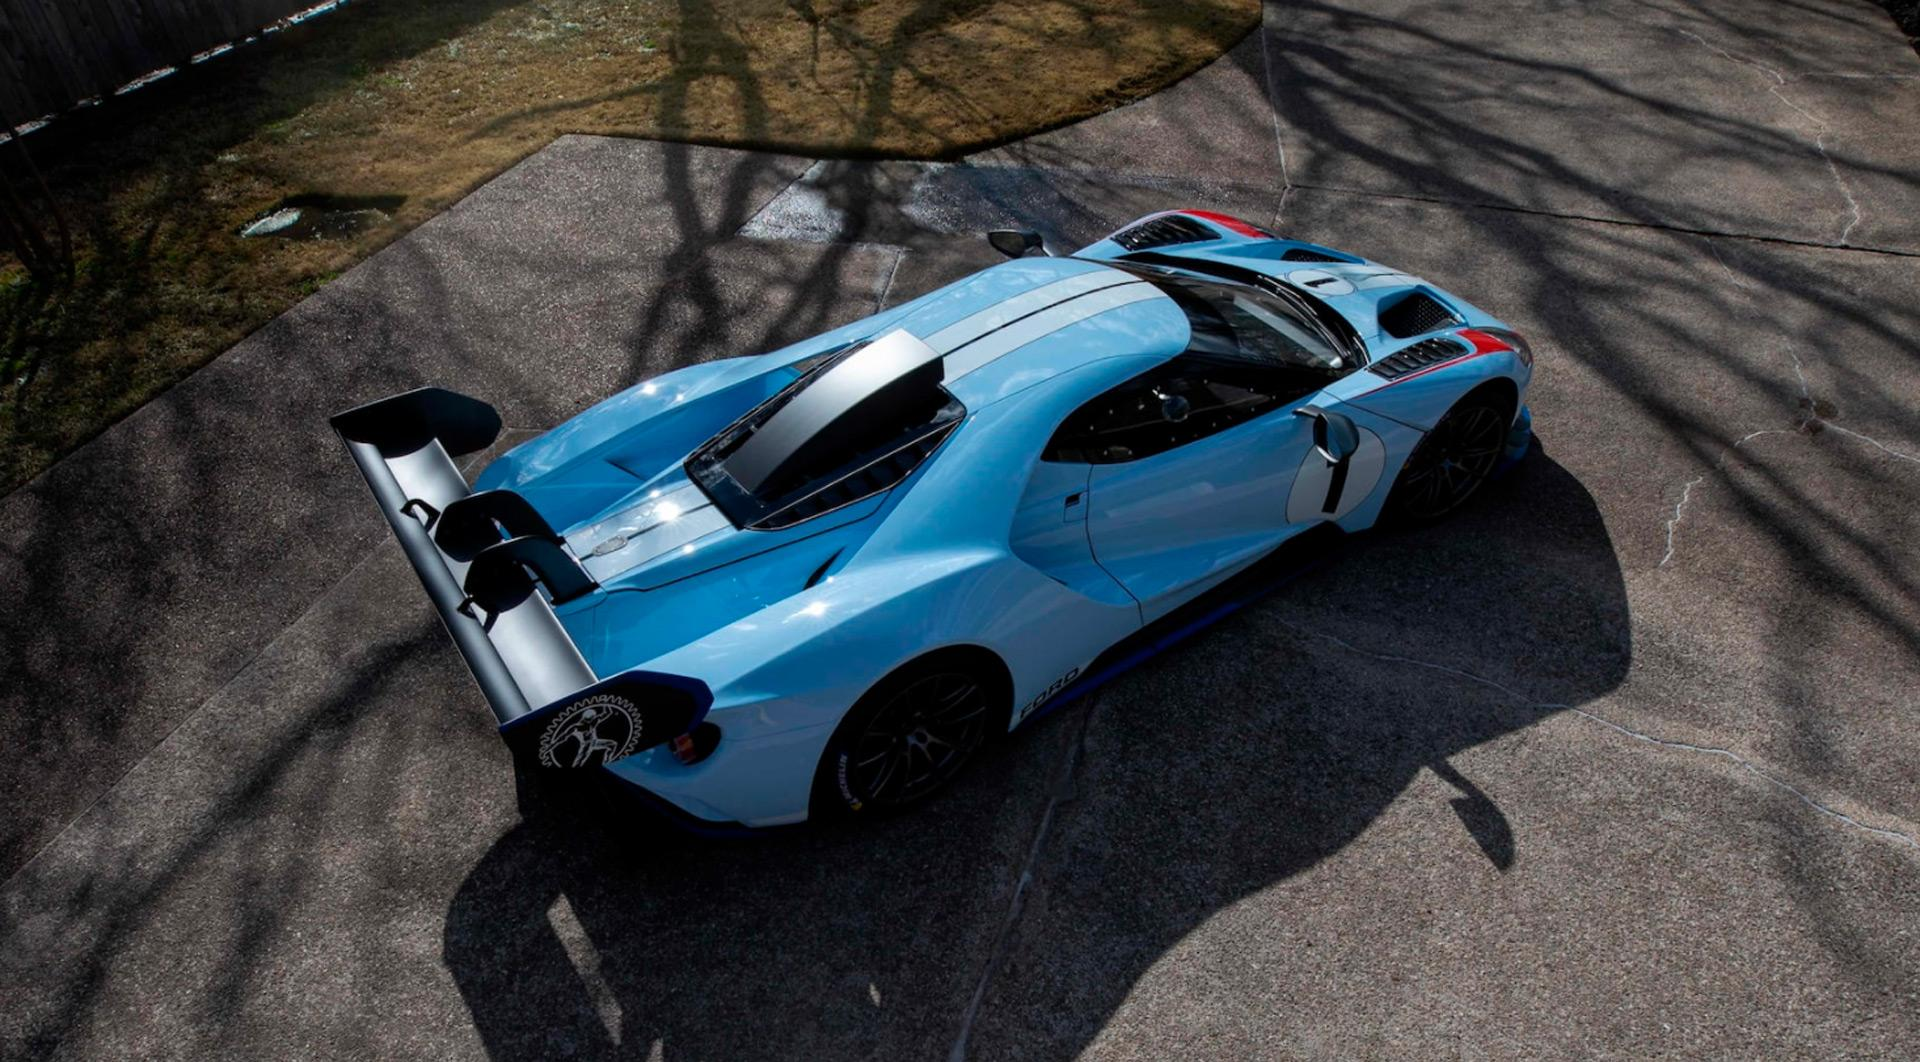 An Ultra-Rare Ford GT Mk 2 Sells For $1.87 Million